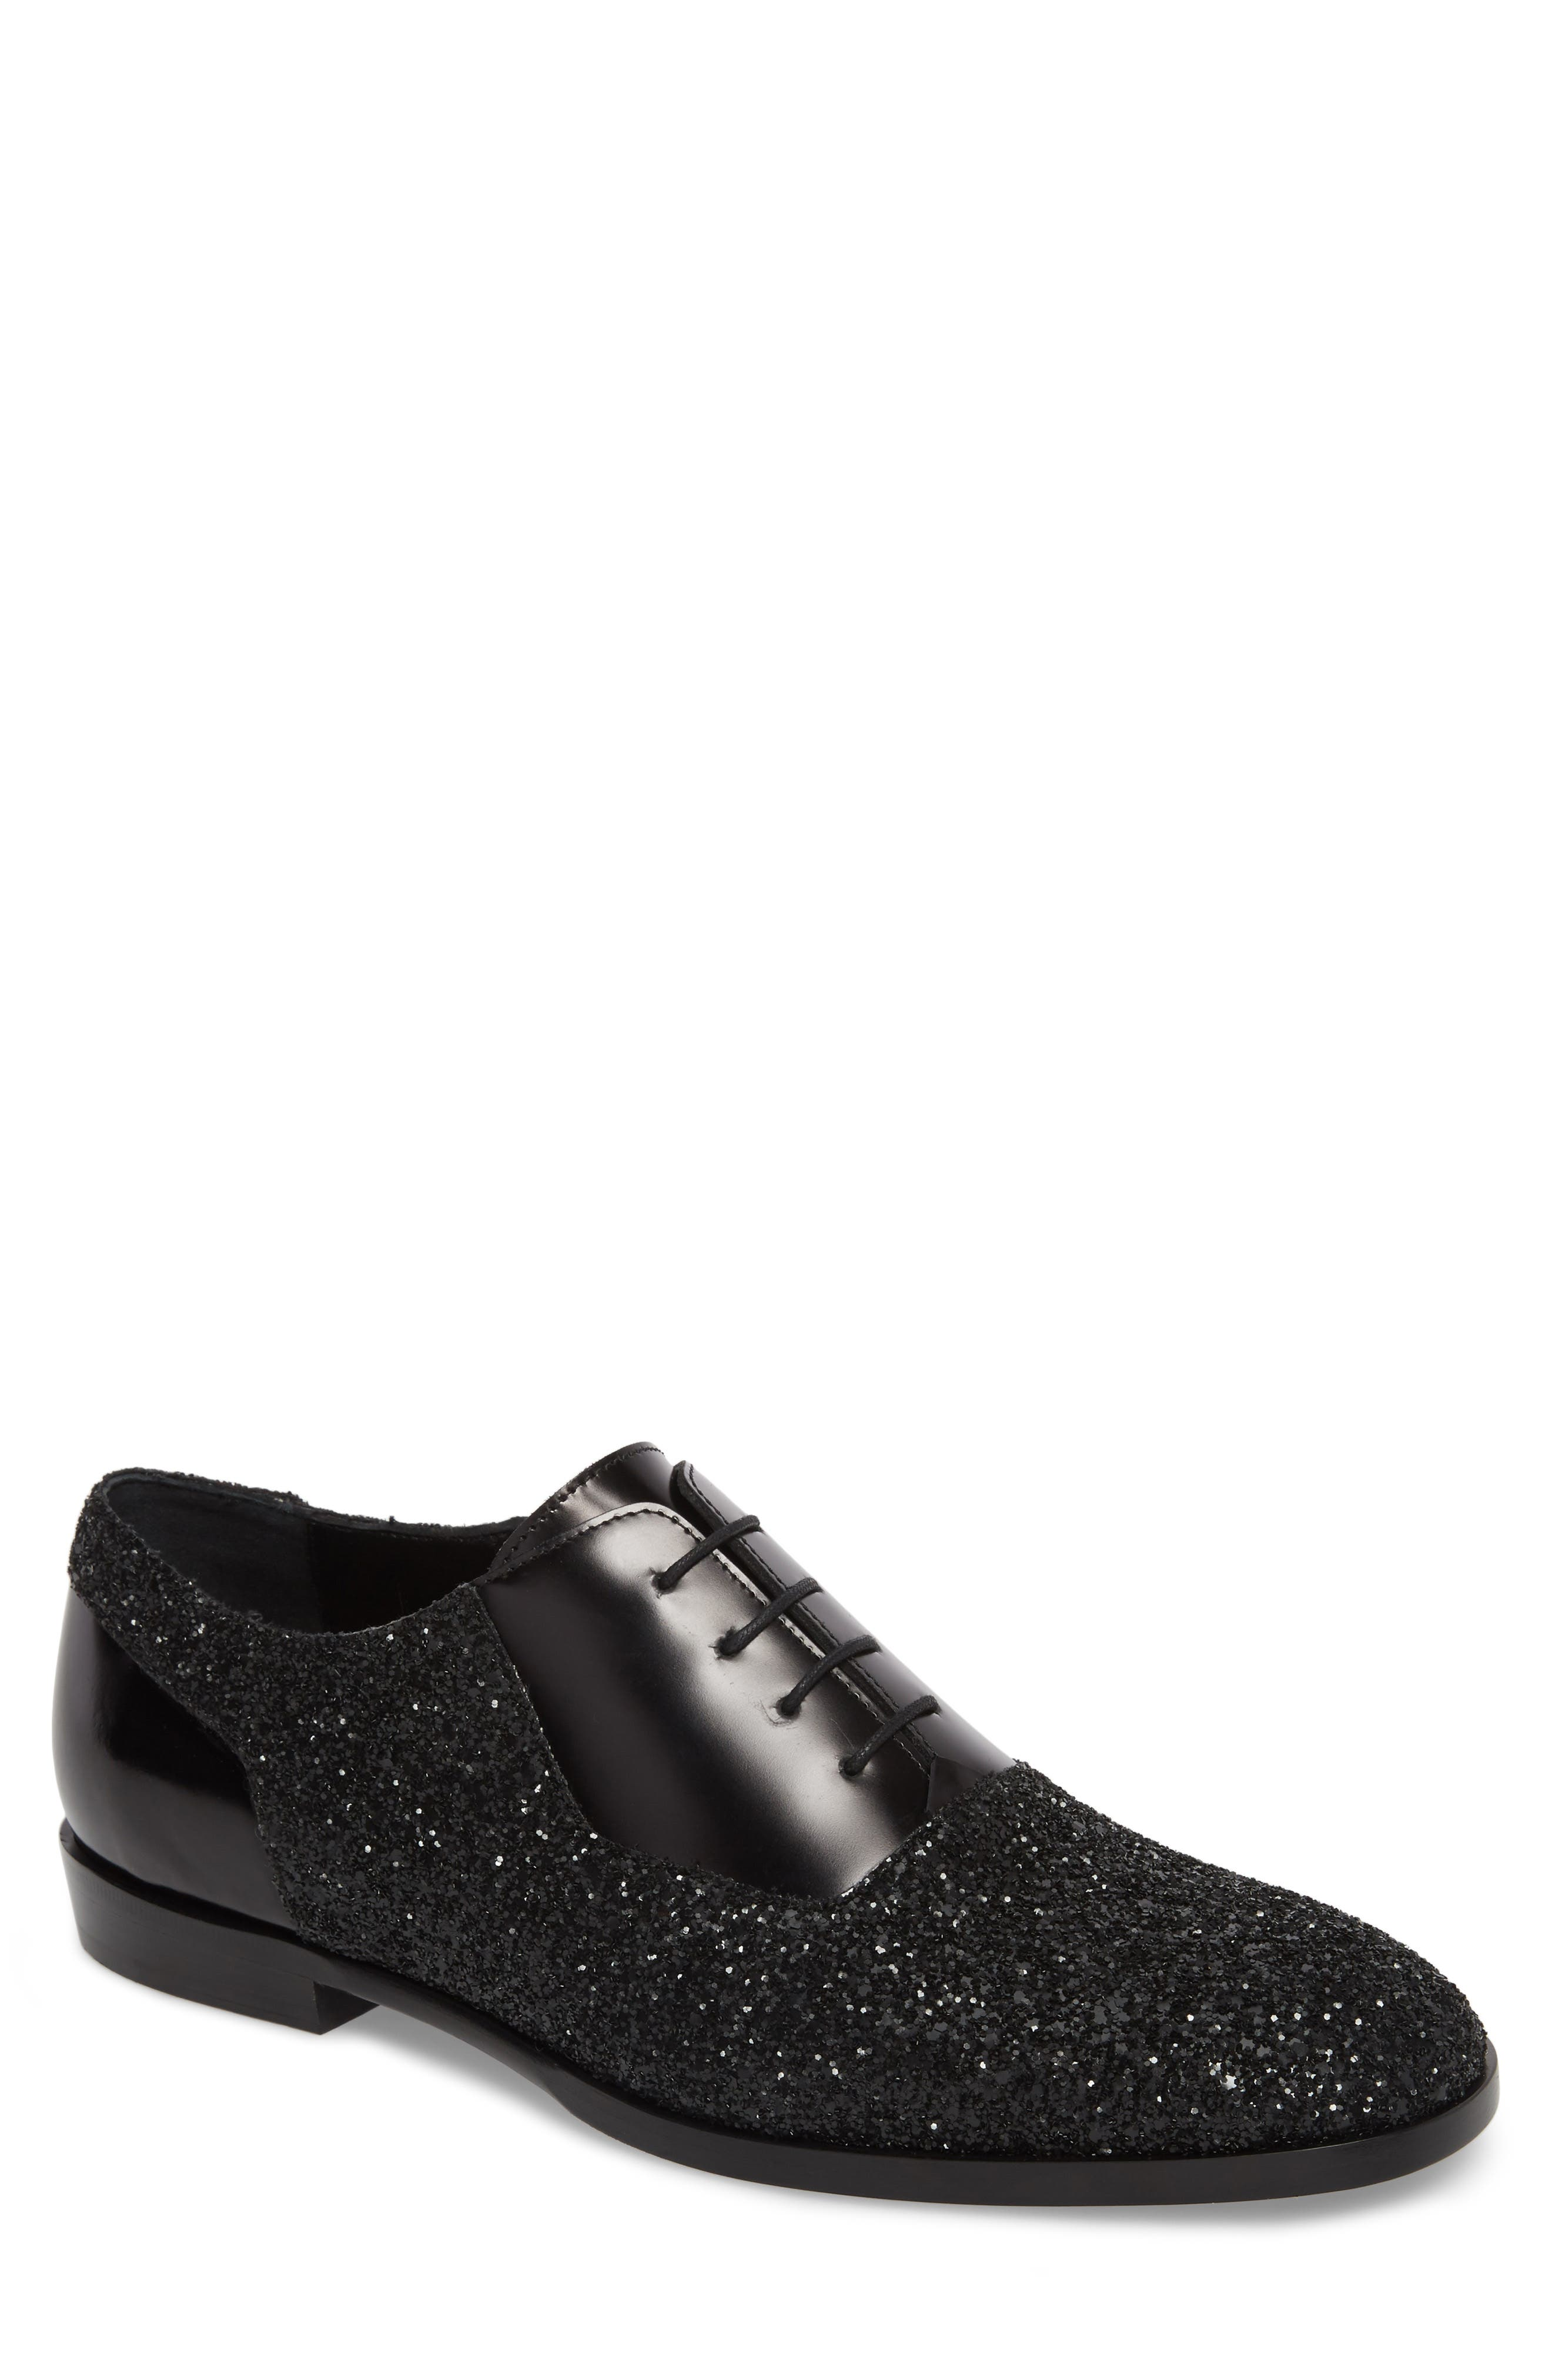 Jimmy choo Designer Shoes, Tyler OGA Leather and Glitter Fabric Oxford Shoes